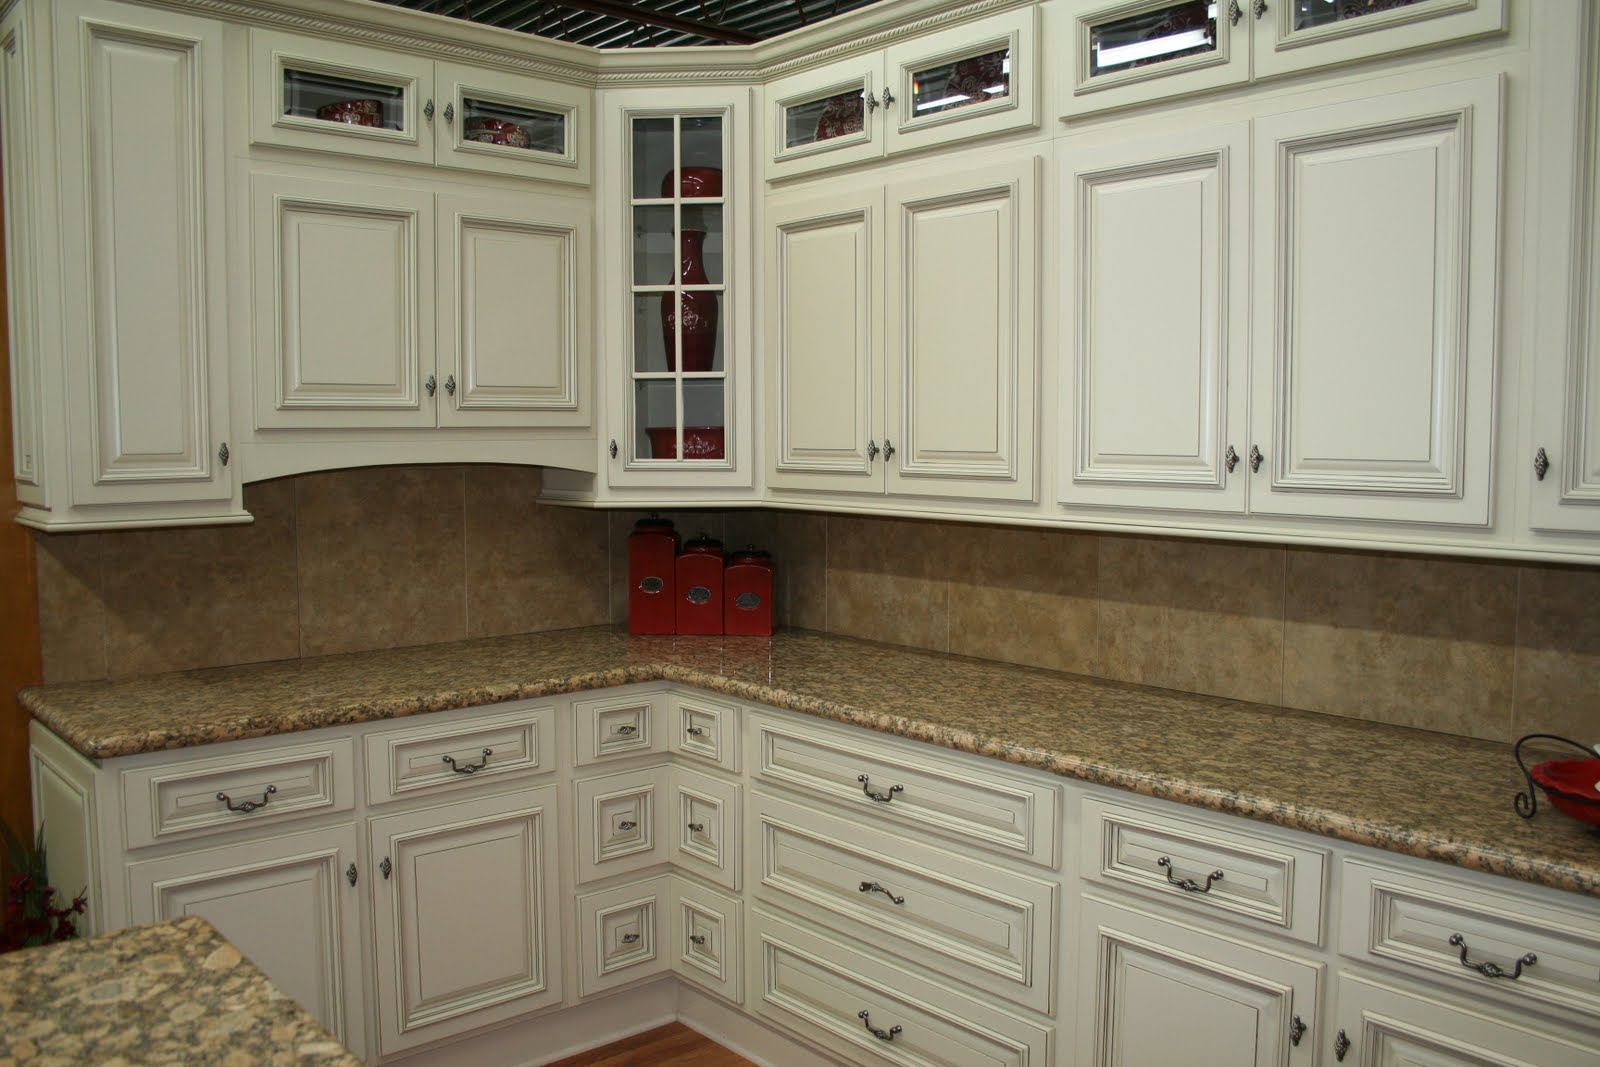 refinishing white kitchen cabinets refinish kitchen cabinets antique white roselawnlutheran 4679